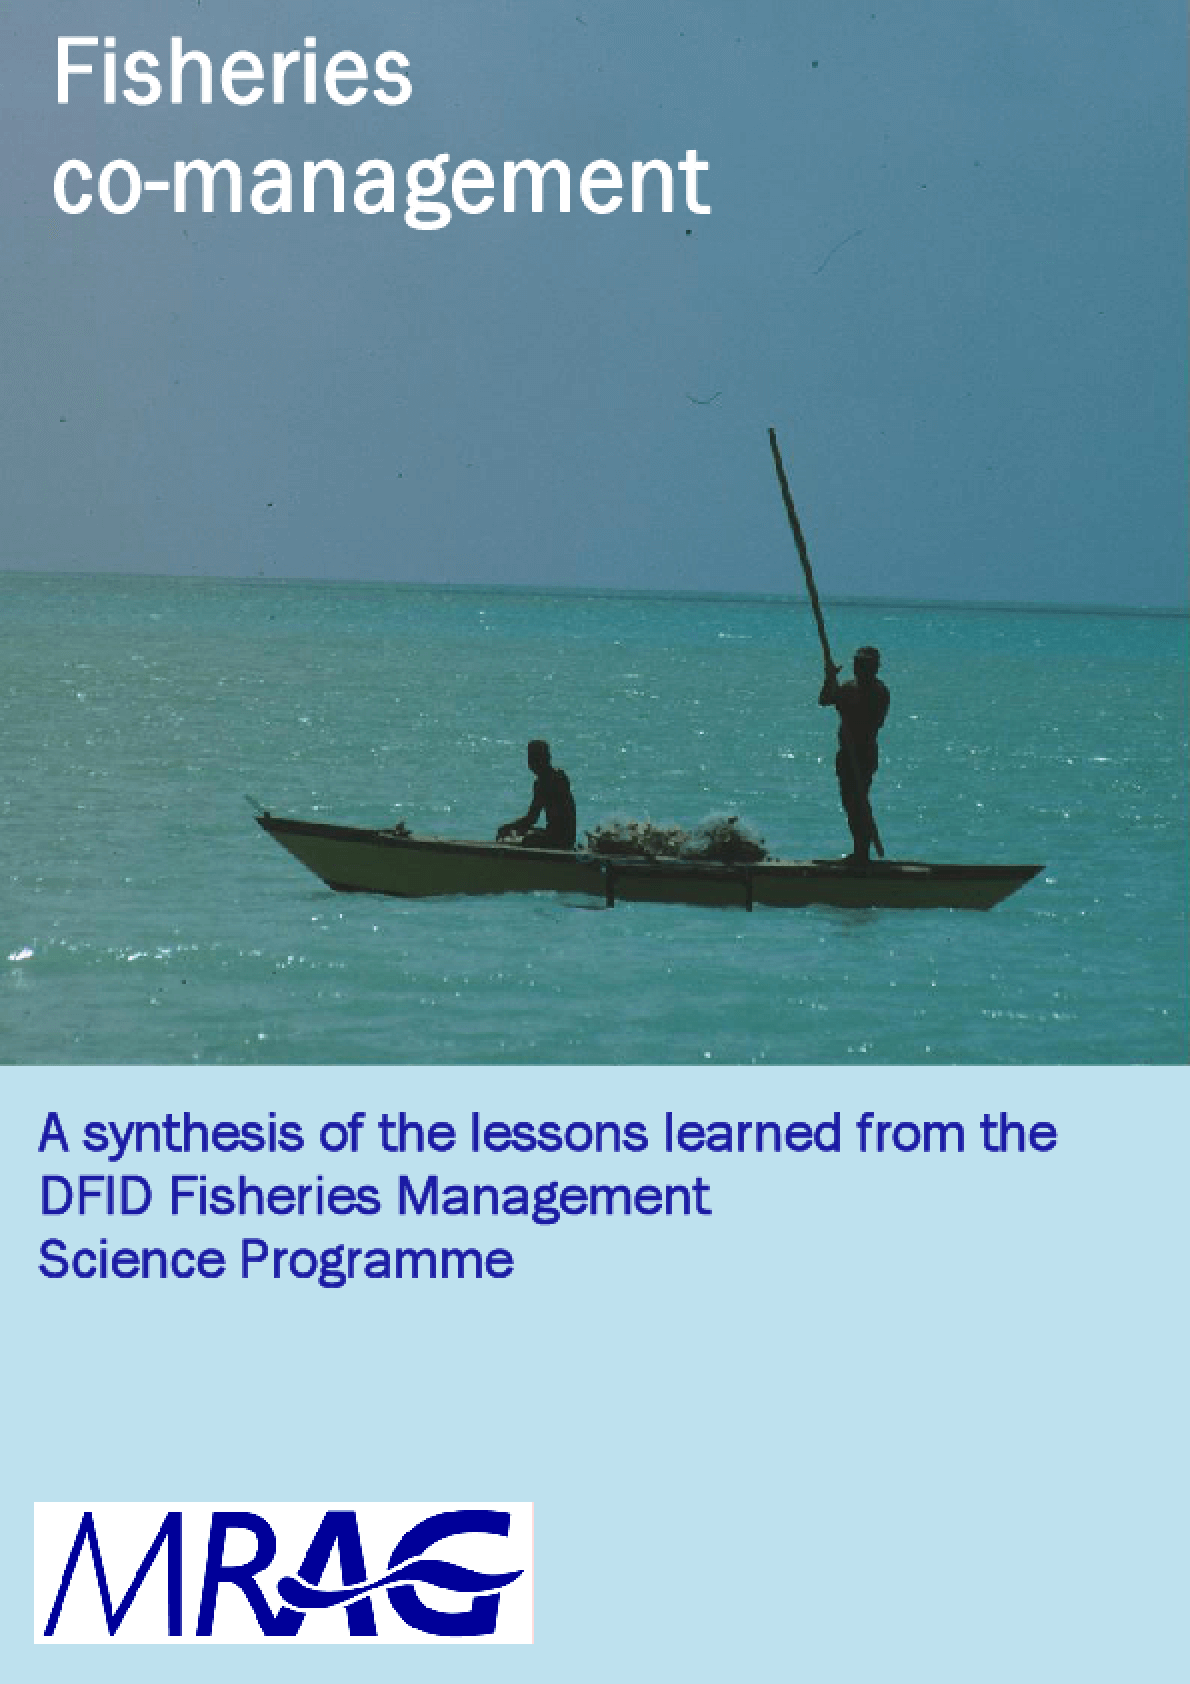 Co-management: A Synthesis of the Lessons Learned from the DFID Fisheries Management Science Programme